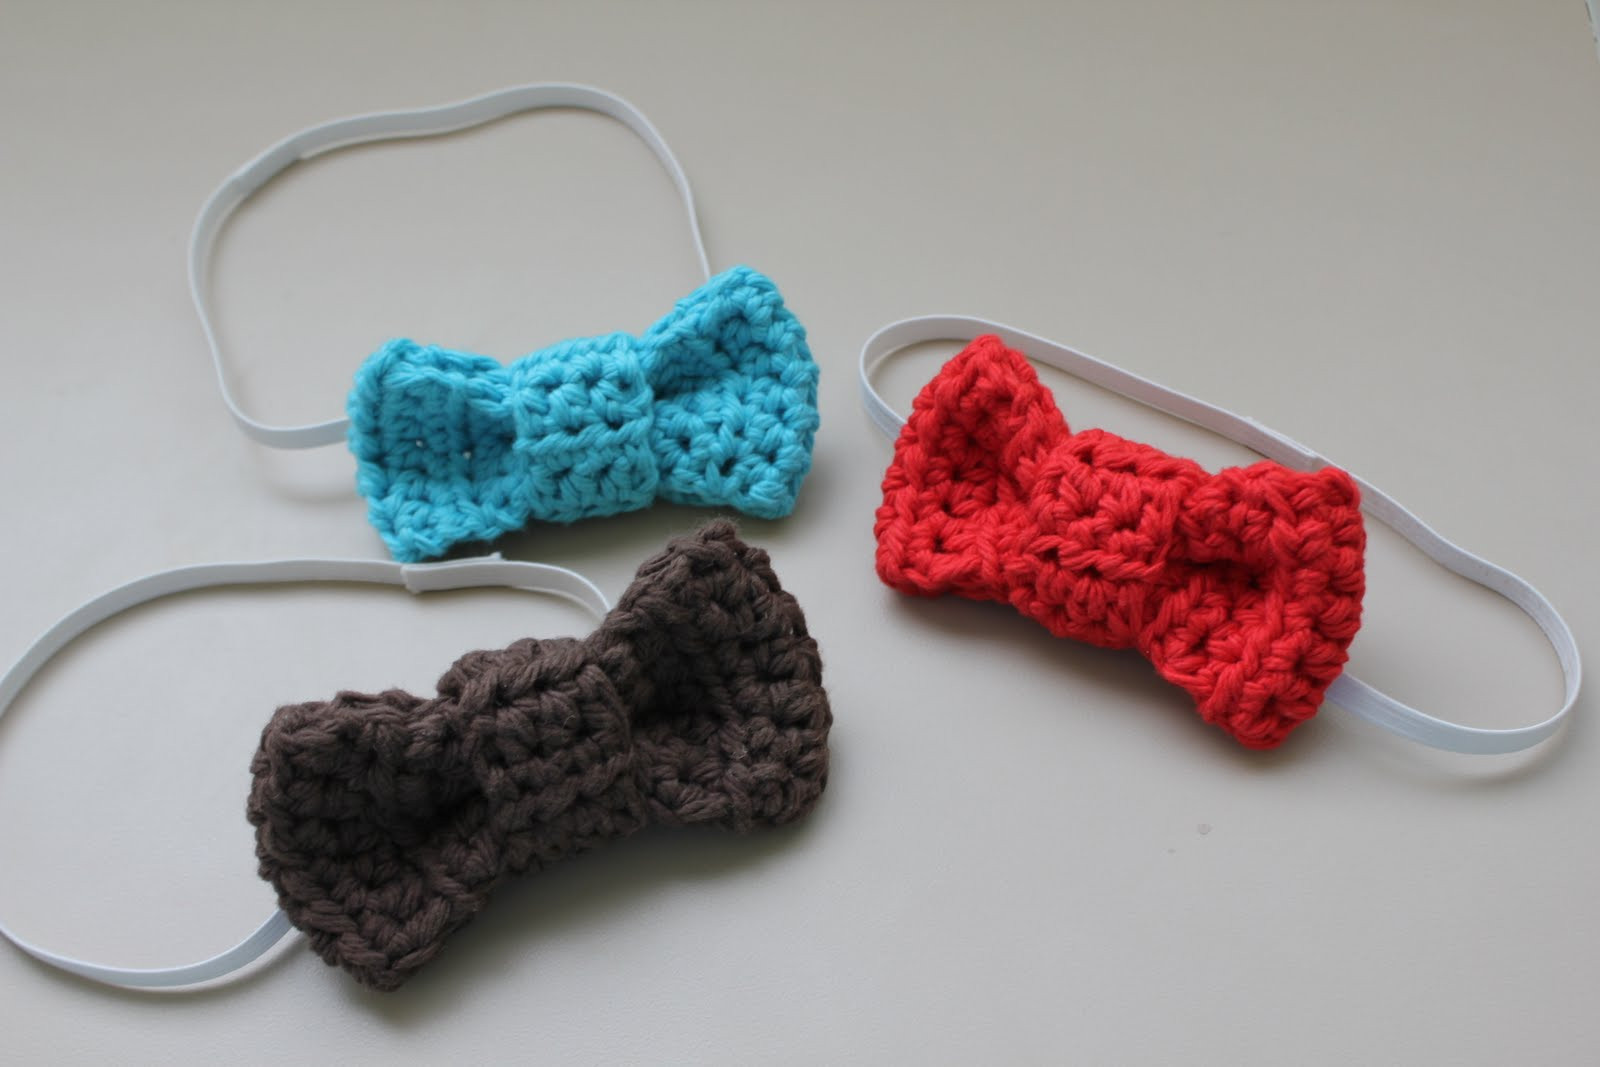 Crochet Bow Tie Inspirational Risc Handmade Crocheted Little Guy Bow Tie Of Brilliant 40 Pics Crochet Bow Tie